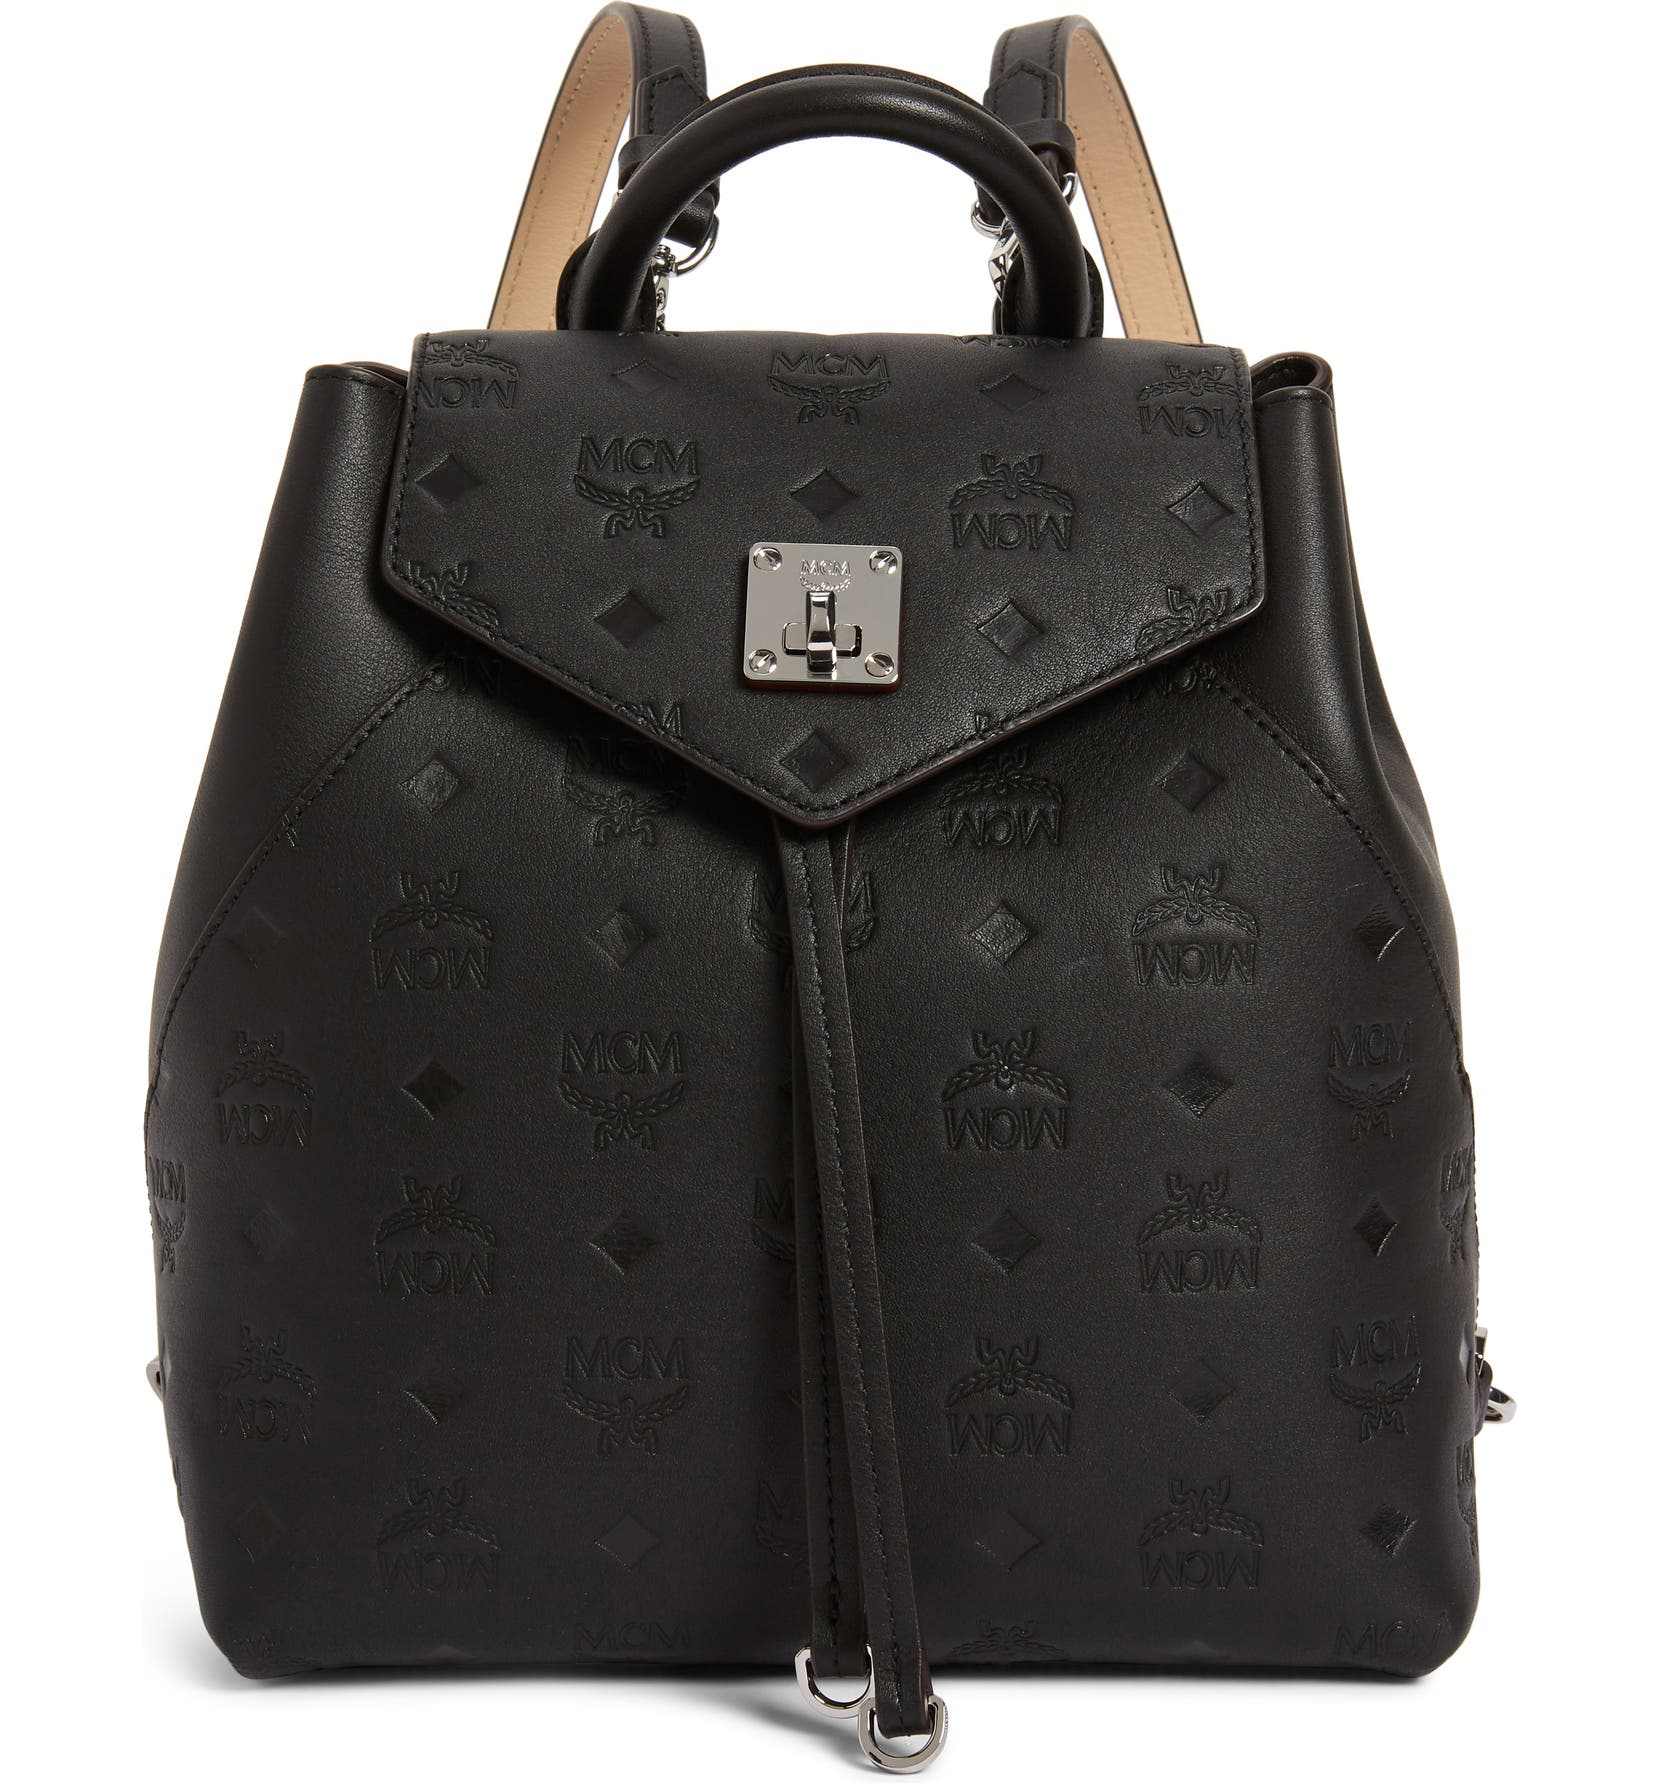 Mcm Essential Monogram Leather Small Backpack Nordstrom 859a77dad1185